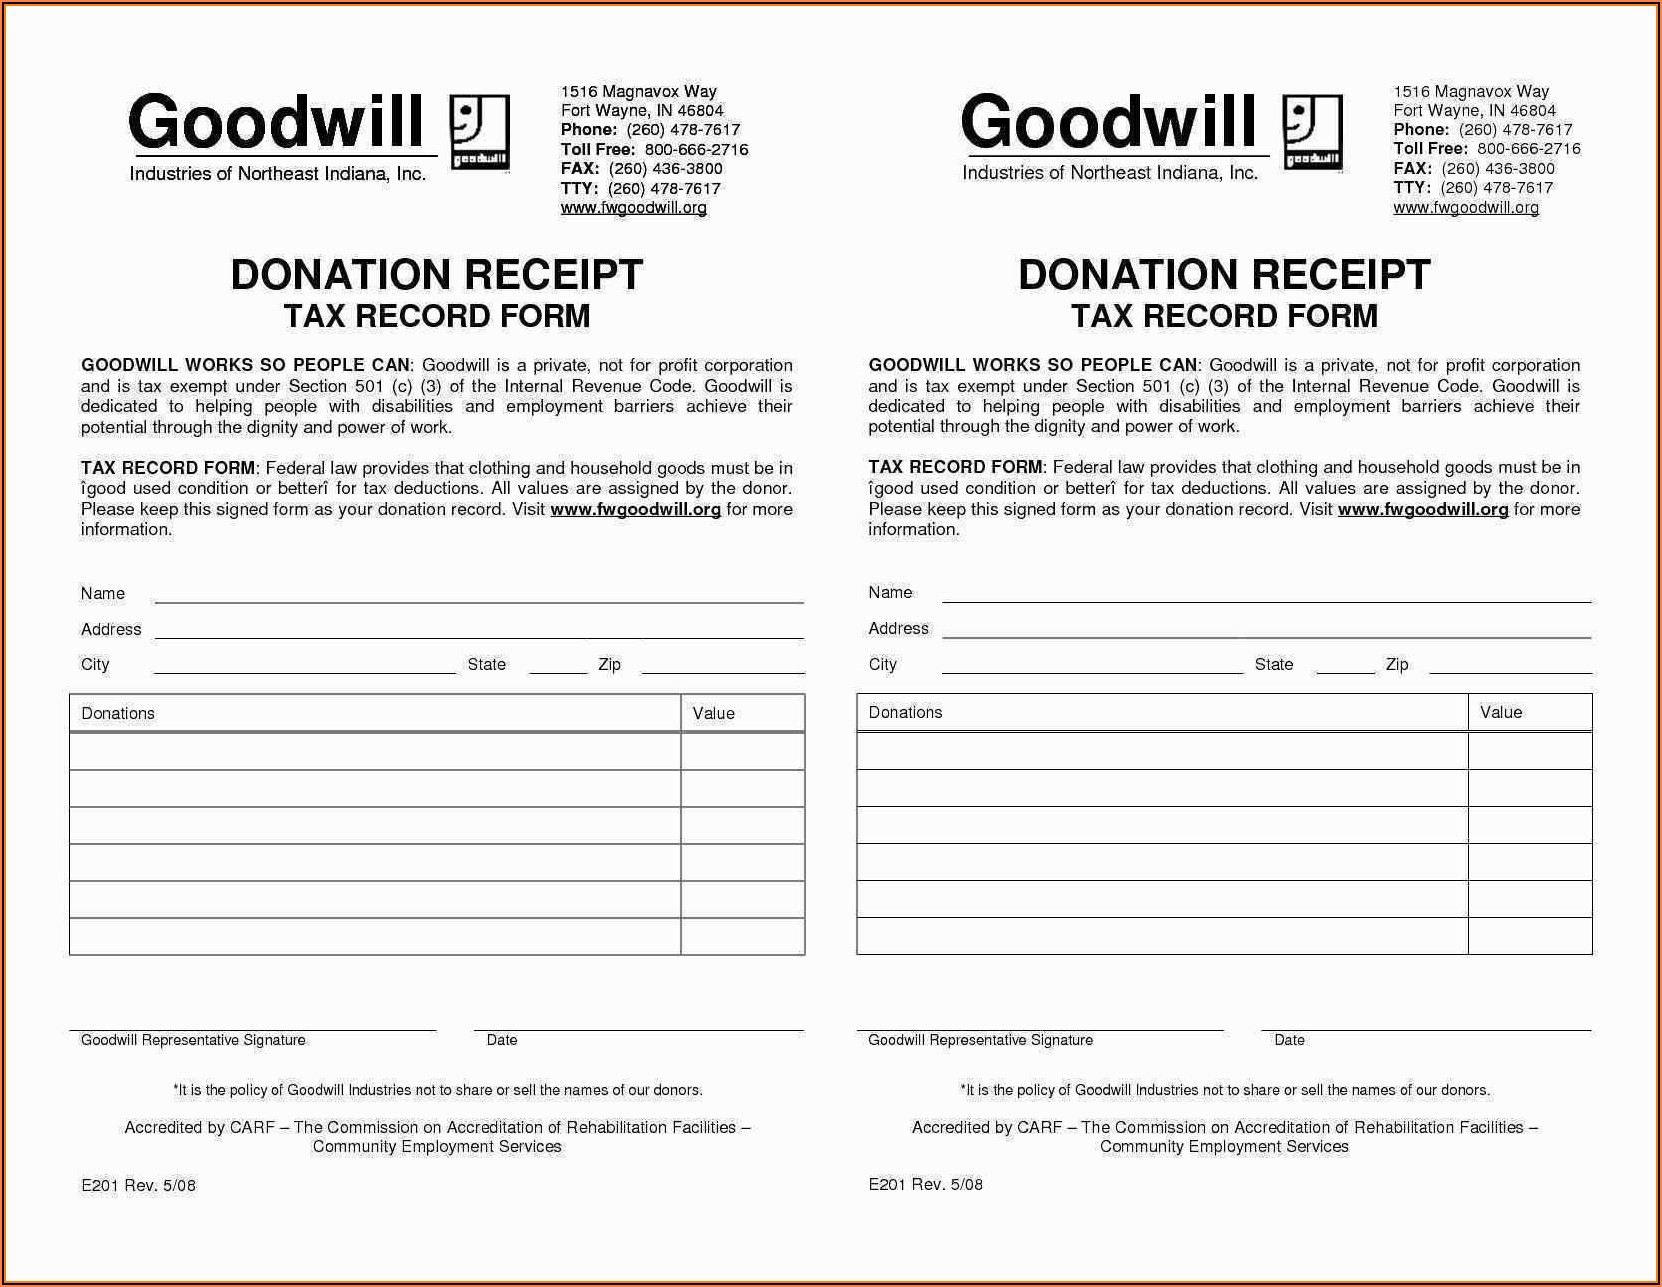 Goodwill Donation Forms Online